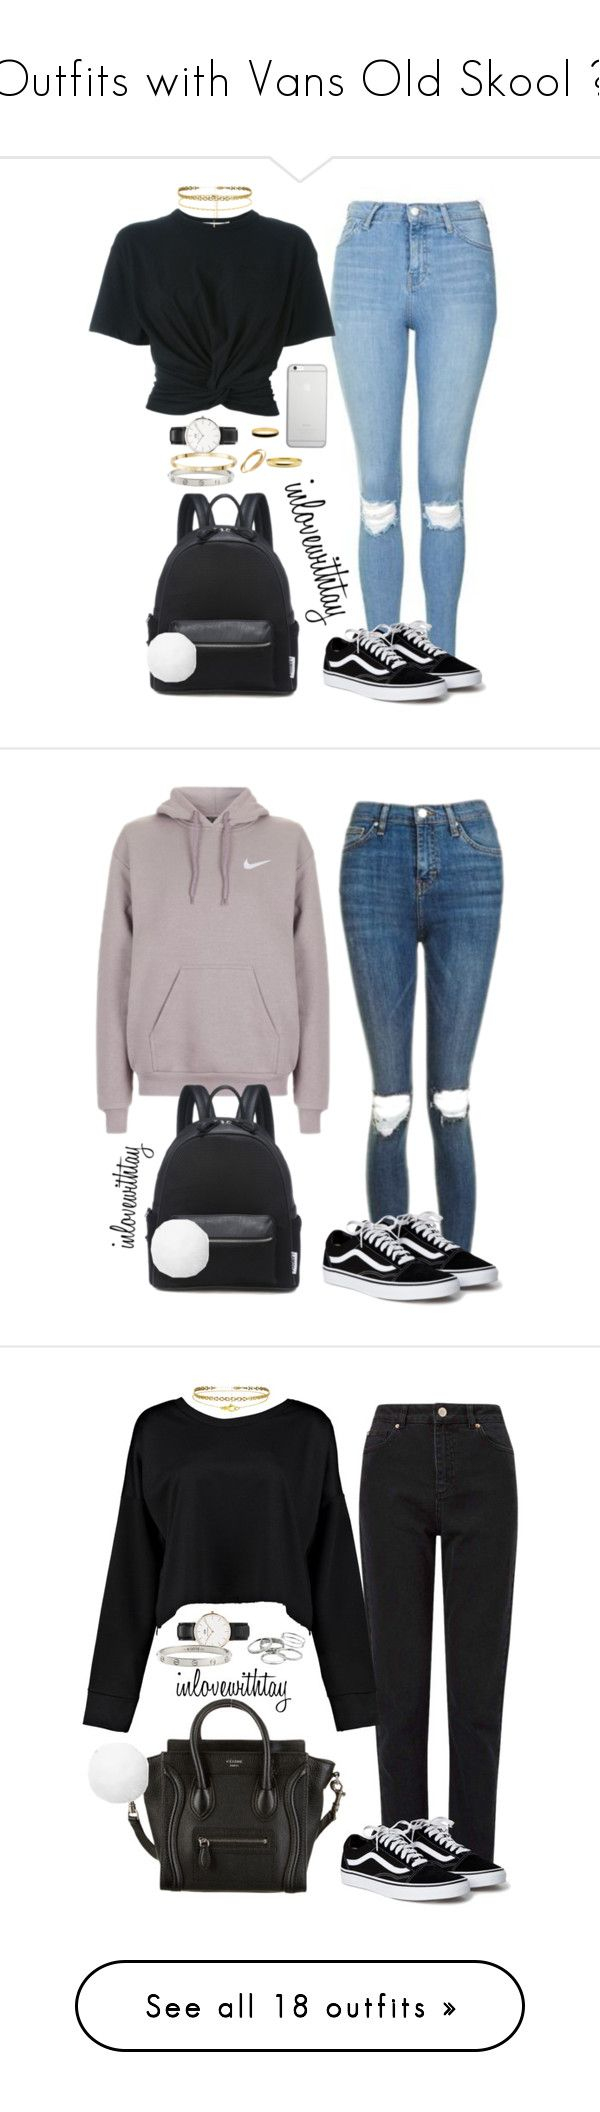 """""""Outfits with Vans Old Skool ❤"""" by inlovewithtay ❤ liked on Polyvore featuring Topshop, Lamoda, T By Alexander Wang, Michael Kors, Daniel Wellington, Cartier, Halcyon Days, Native Union, NIKE and Pink"""